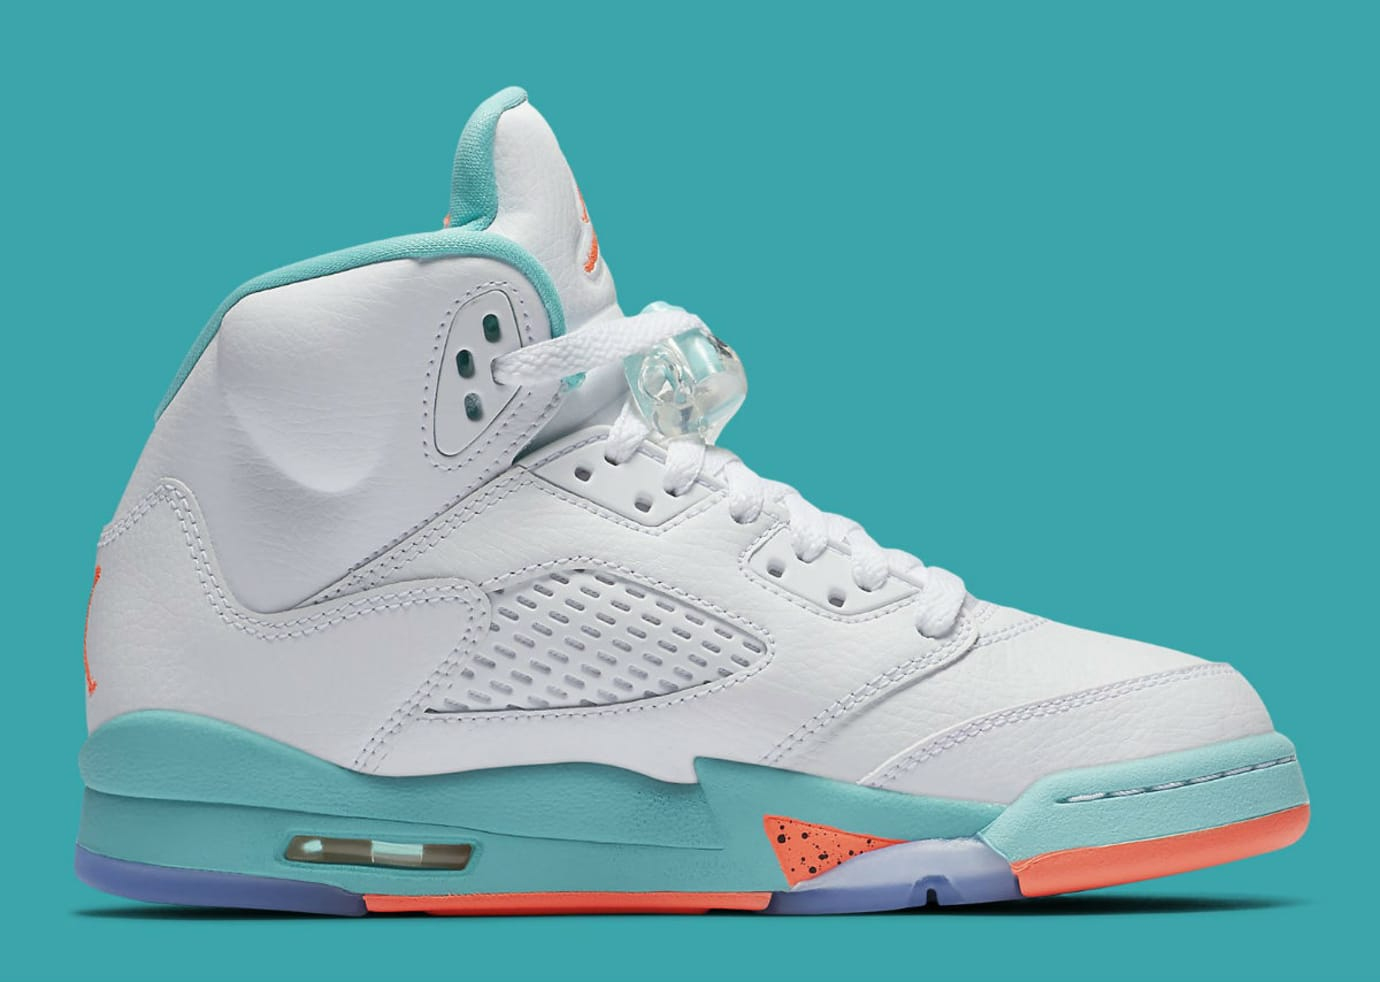 size 40 2f6d0 311ed Image via Nike Air Jordan 5 V GS White Crimson Pulse Light Aqua Release  Date 440892-100 Medial